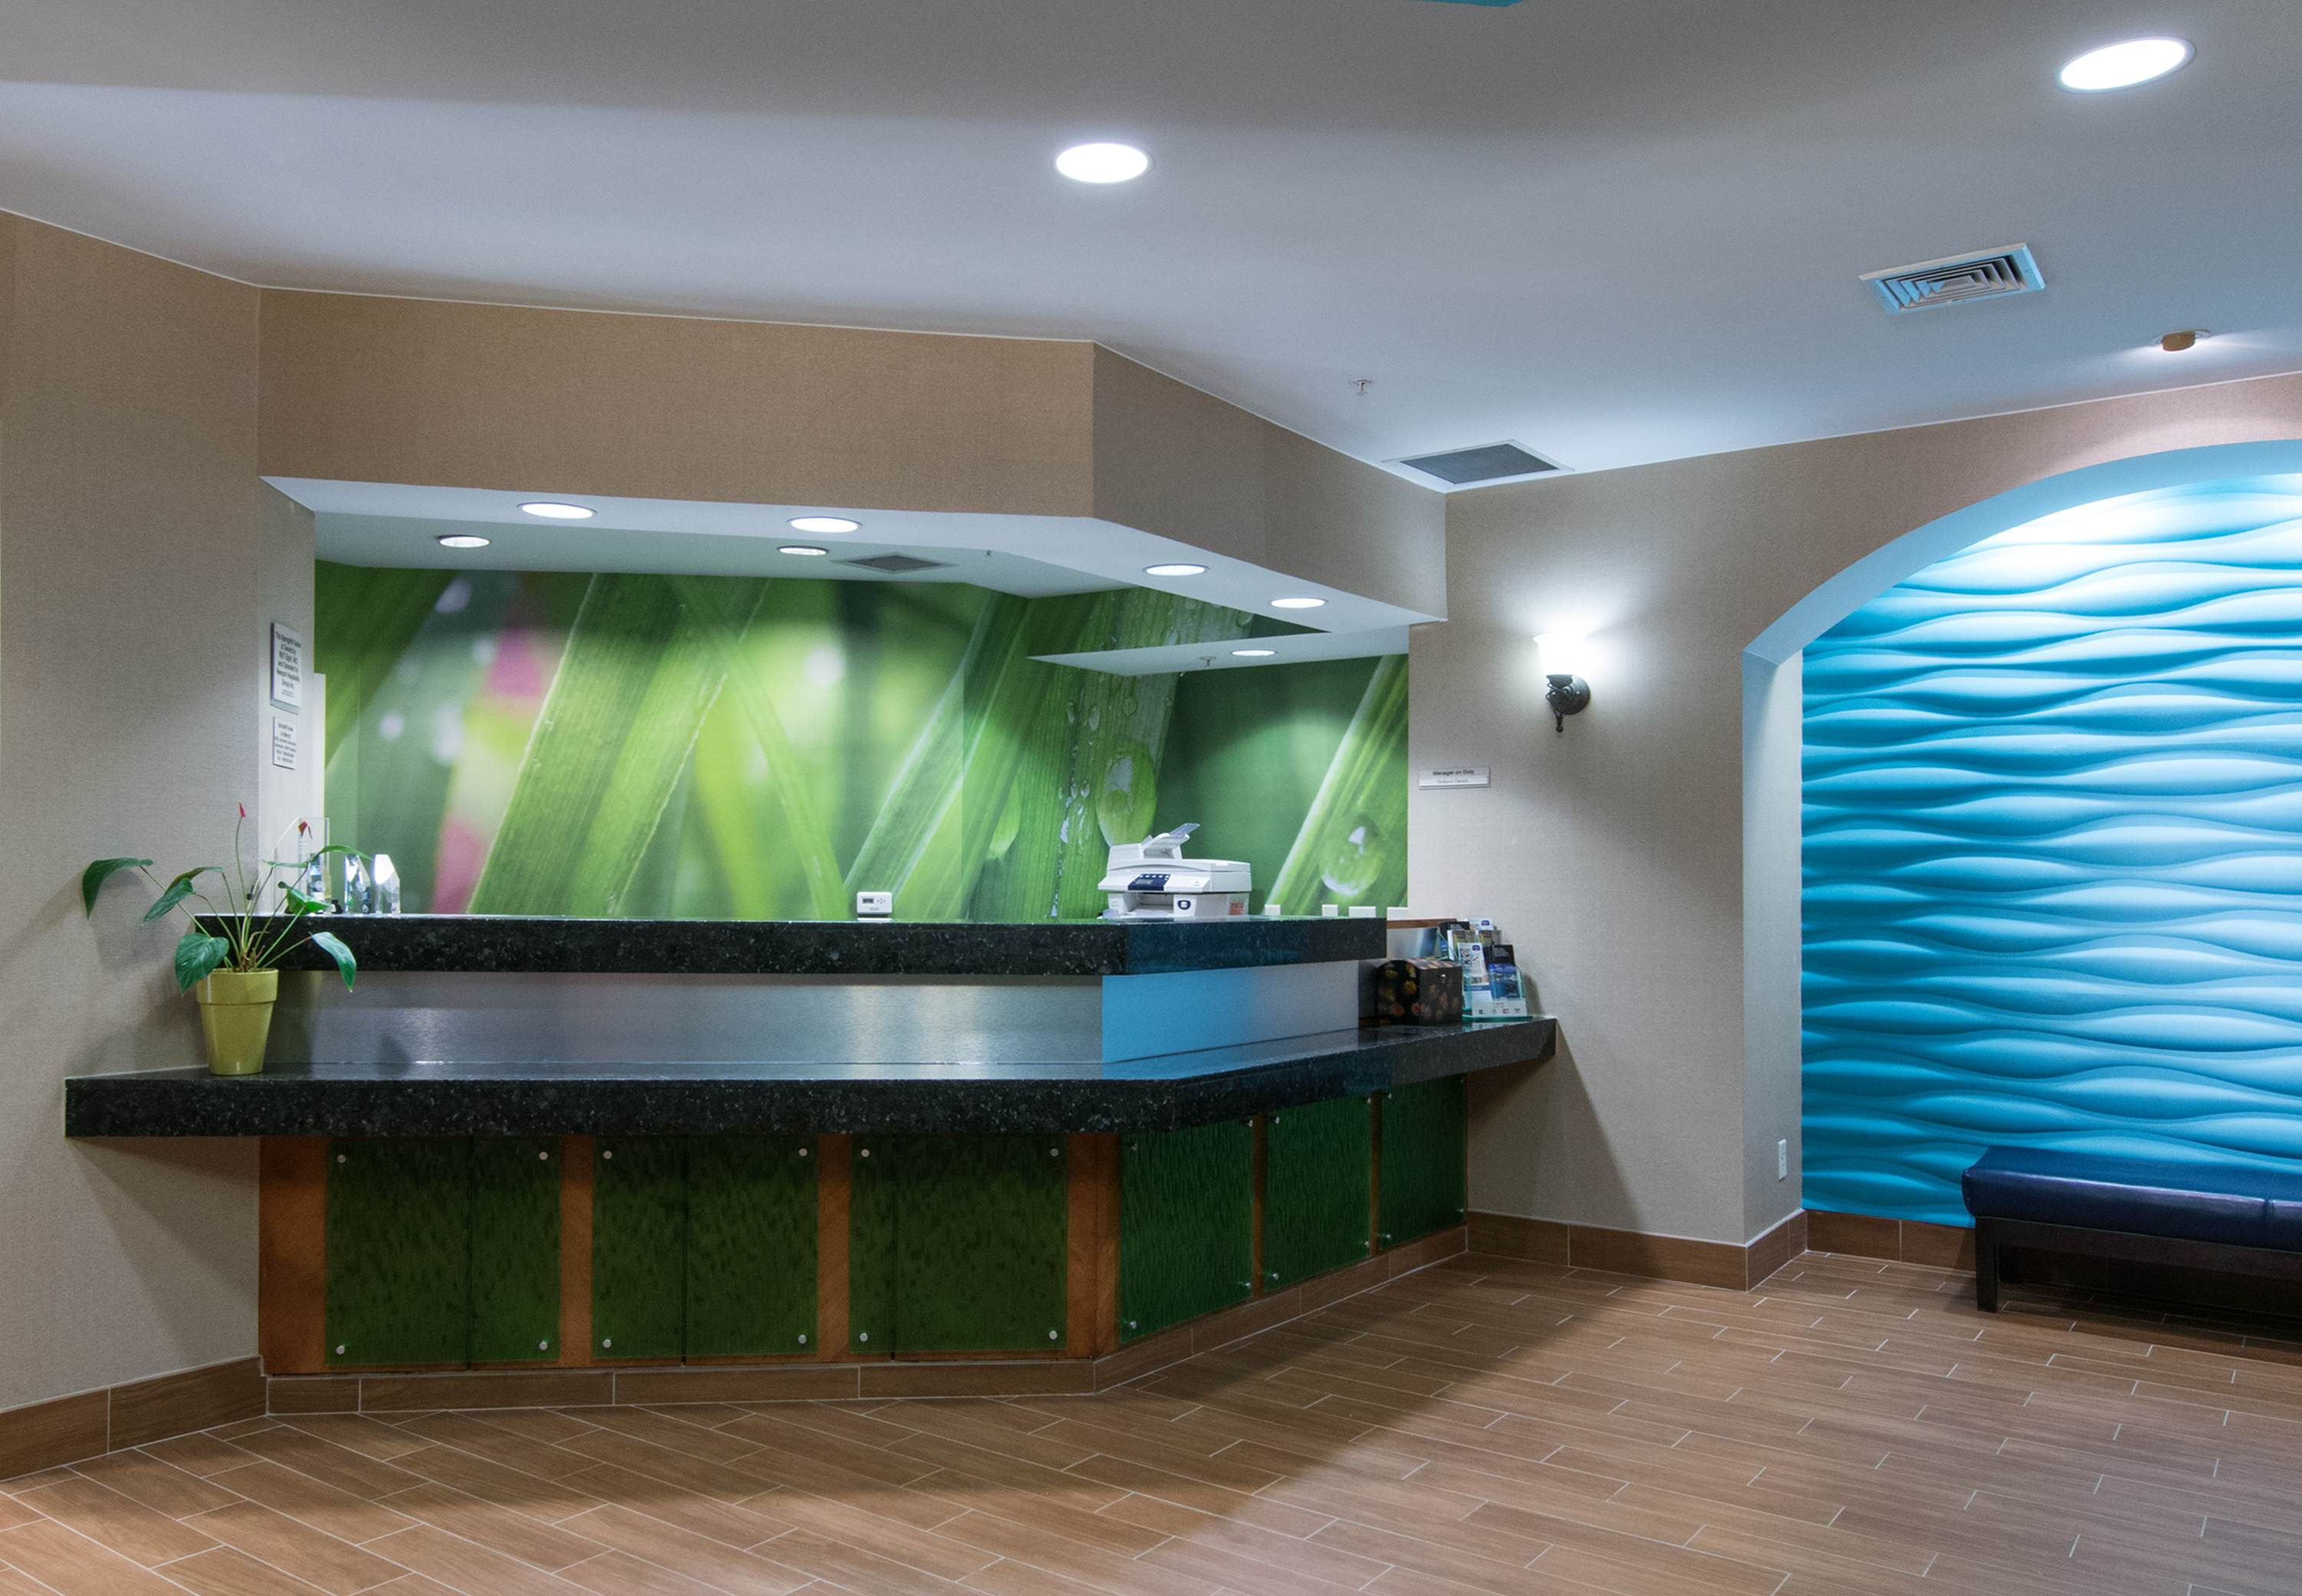 SpringHill Suites by Marriott Greensboro image 9